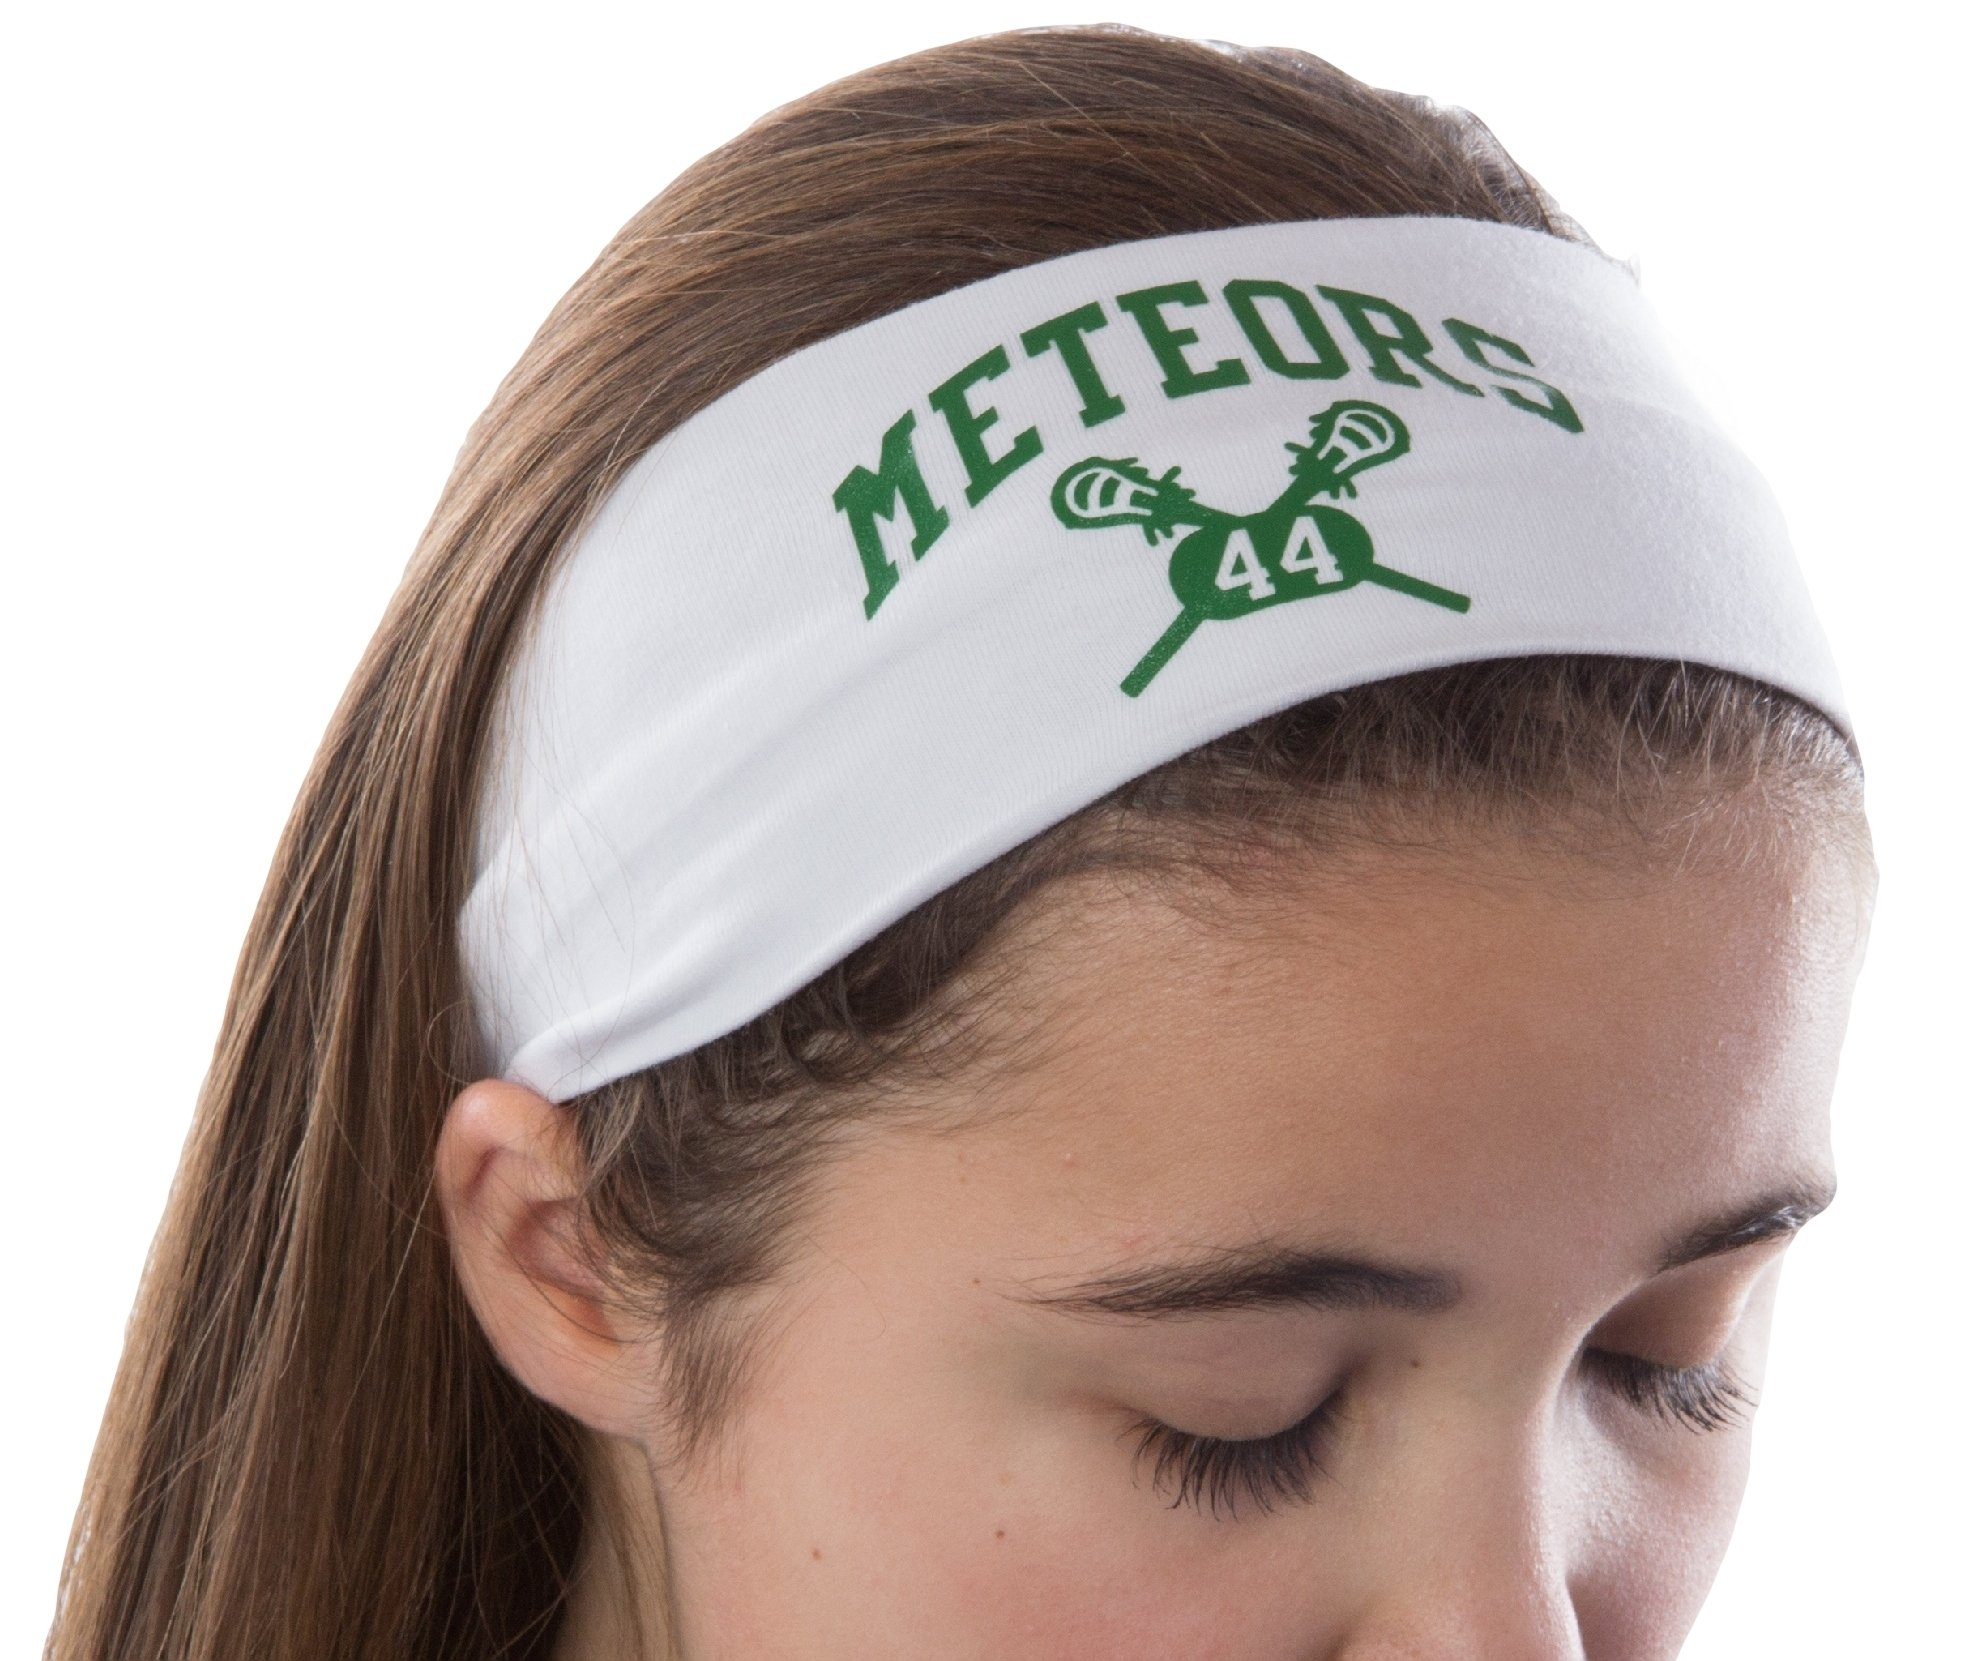 Design Your Own Personalized LACROSSE Cotton Stretch Headband With CUSTOM NAME VARSITY FONT by Funny Girl Designs